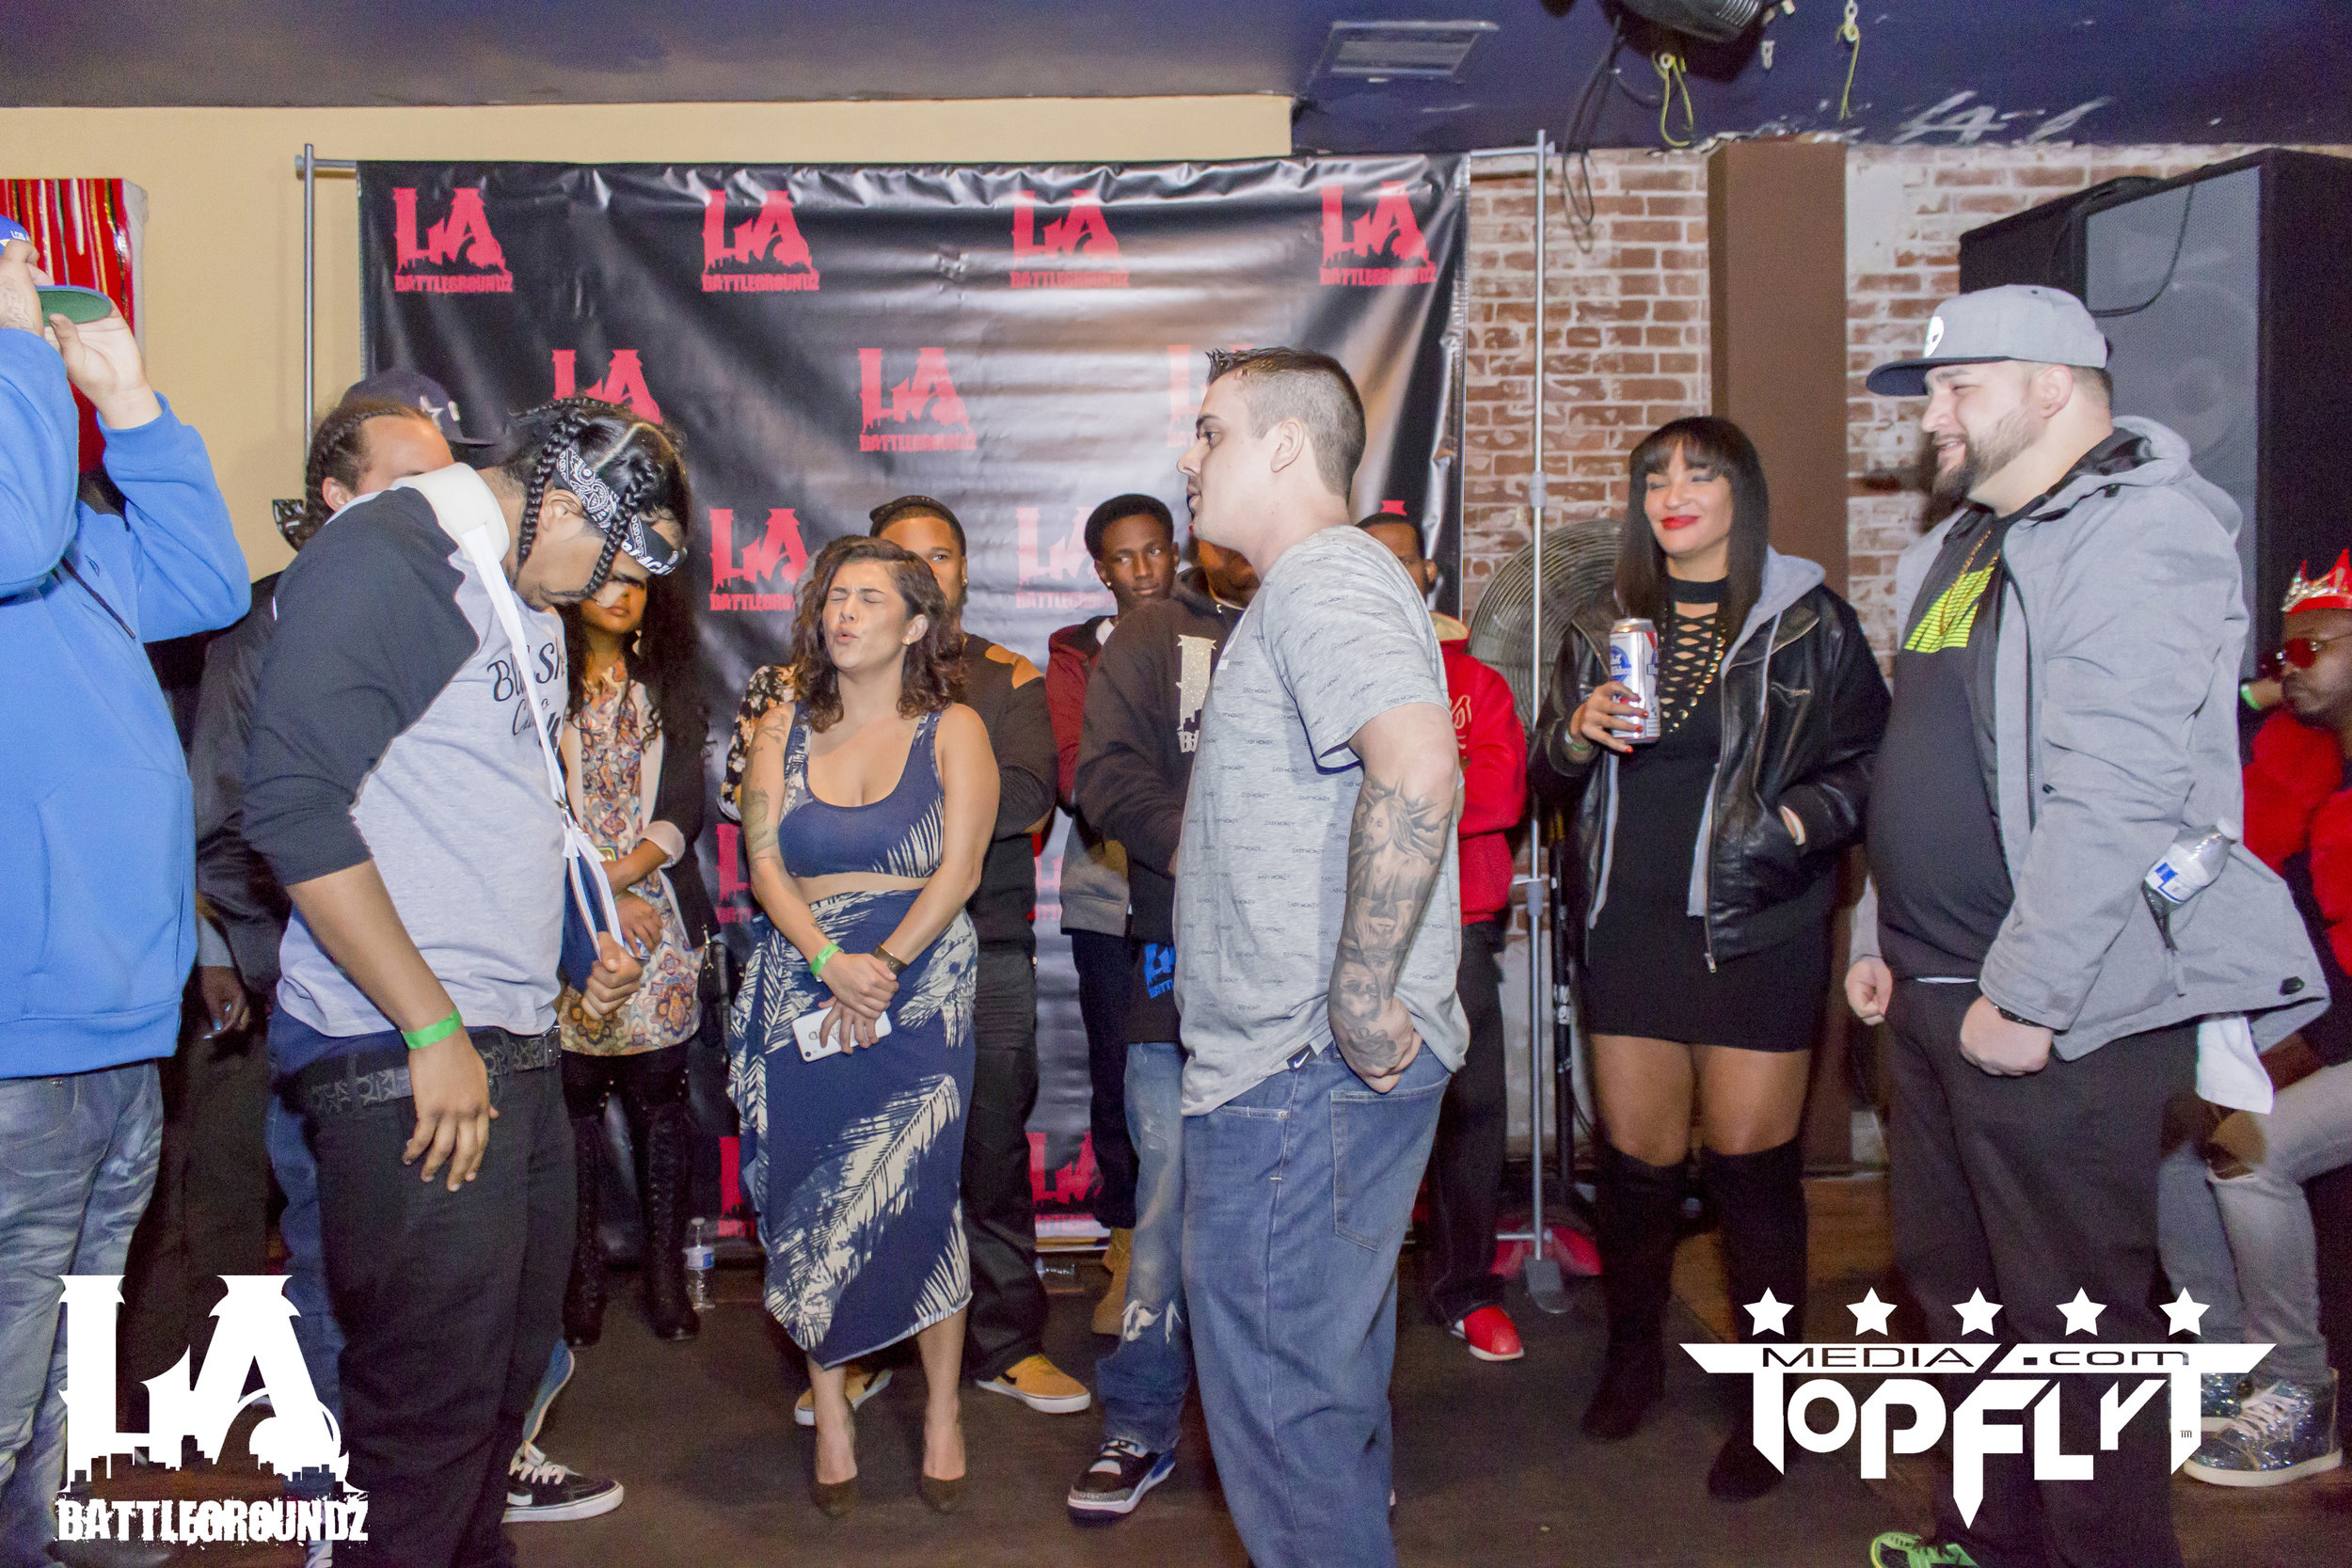 LA Battlegroundz - Decembarfest - The Christening_70.jpg